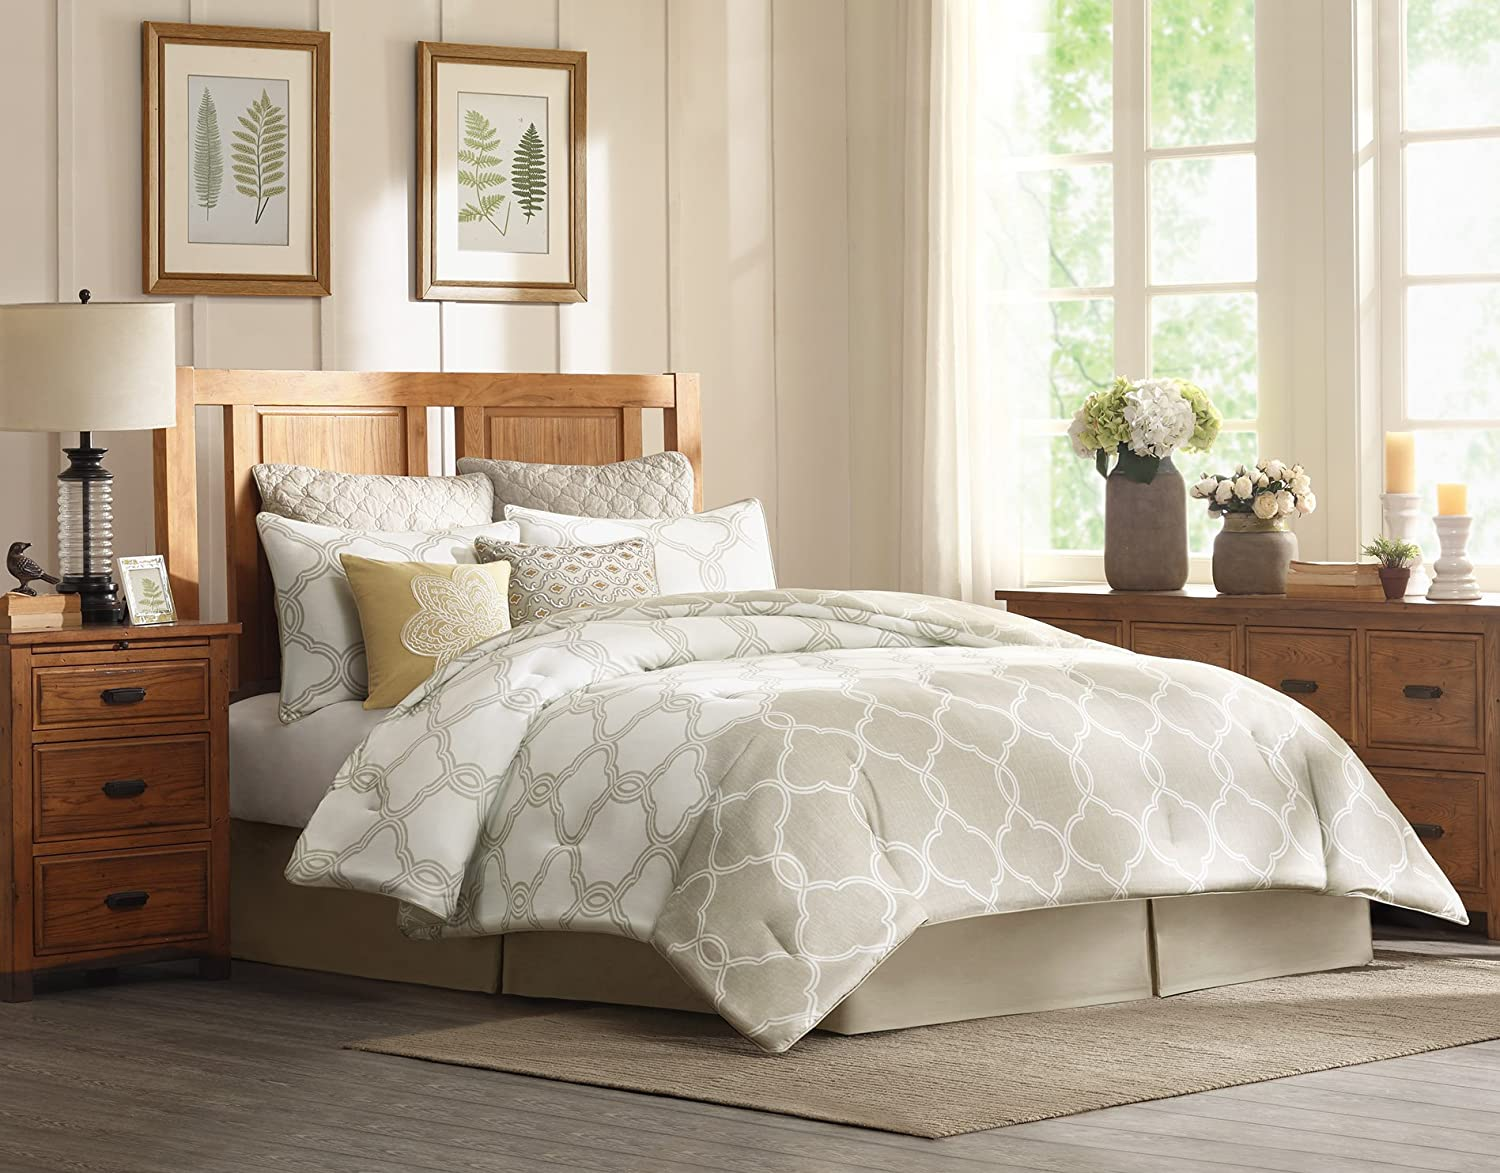 Harbor House Gentry Comforter Set, California King, Neutral